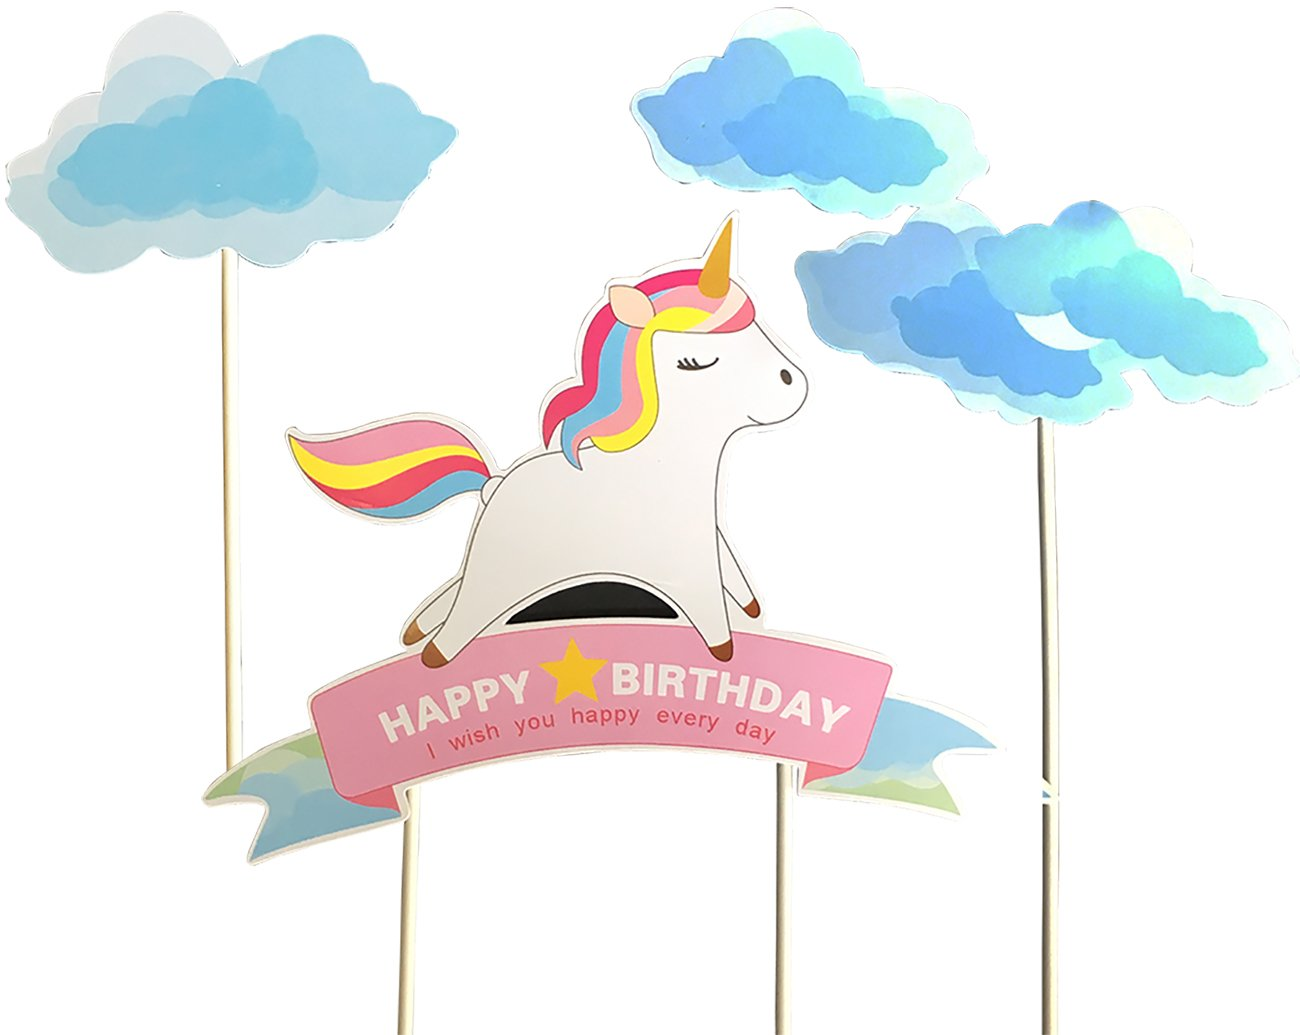 Blue Handmade Unicorn Birthday Cake Toppers, Cake Decorations for Kids Birthday Party Supplies 3